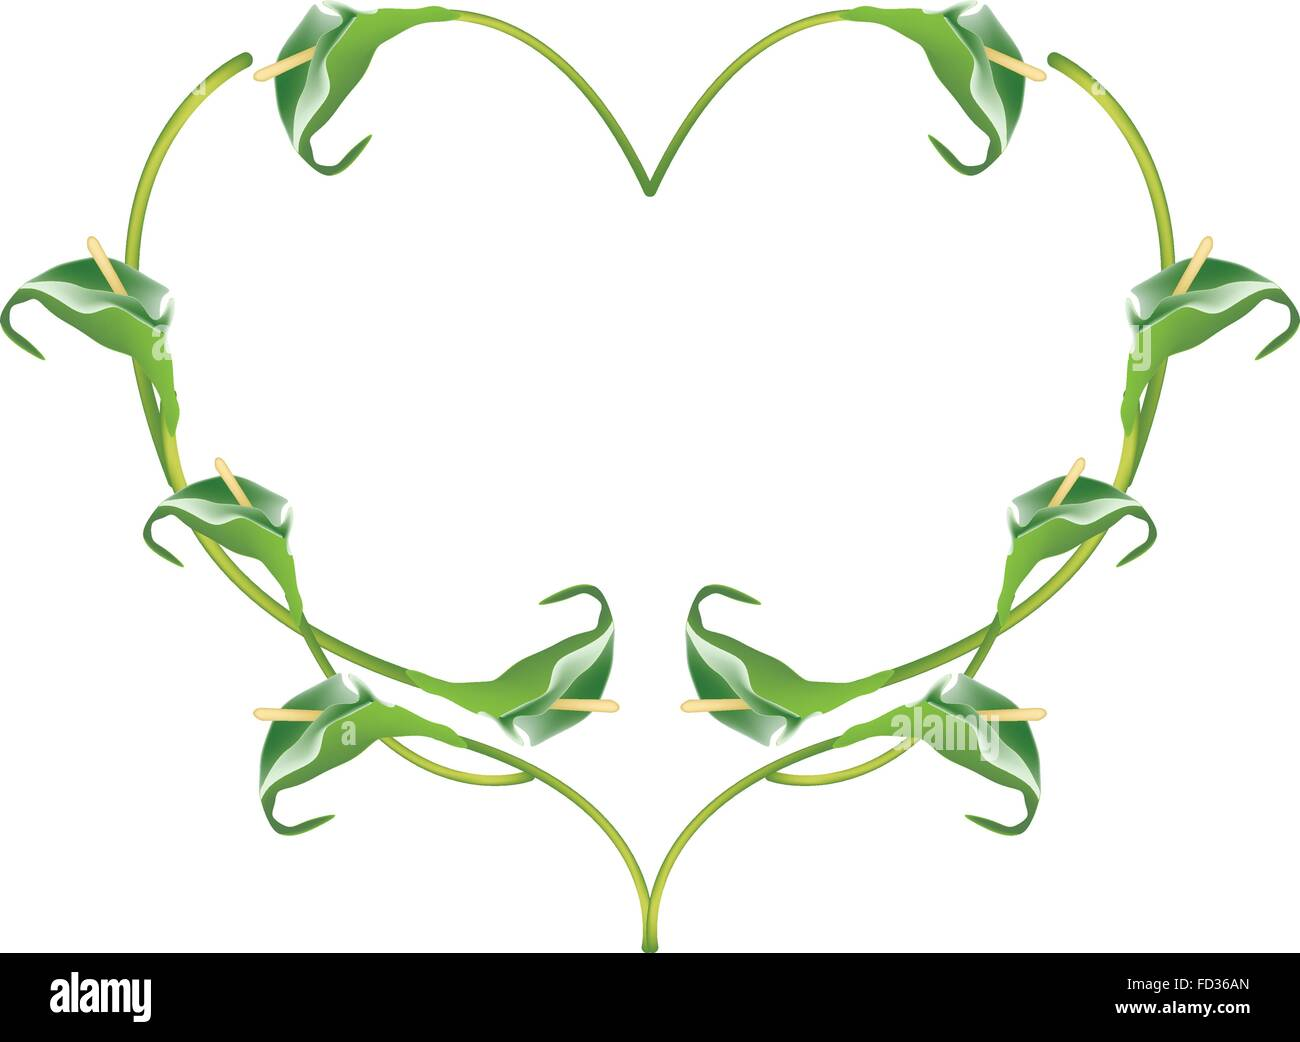 Love Concept, Illustration of Green Anthurium Flowers or Flamingo Flowers Forming in Heart Shape Isolated on White - Stock Vector